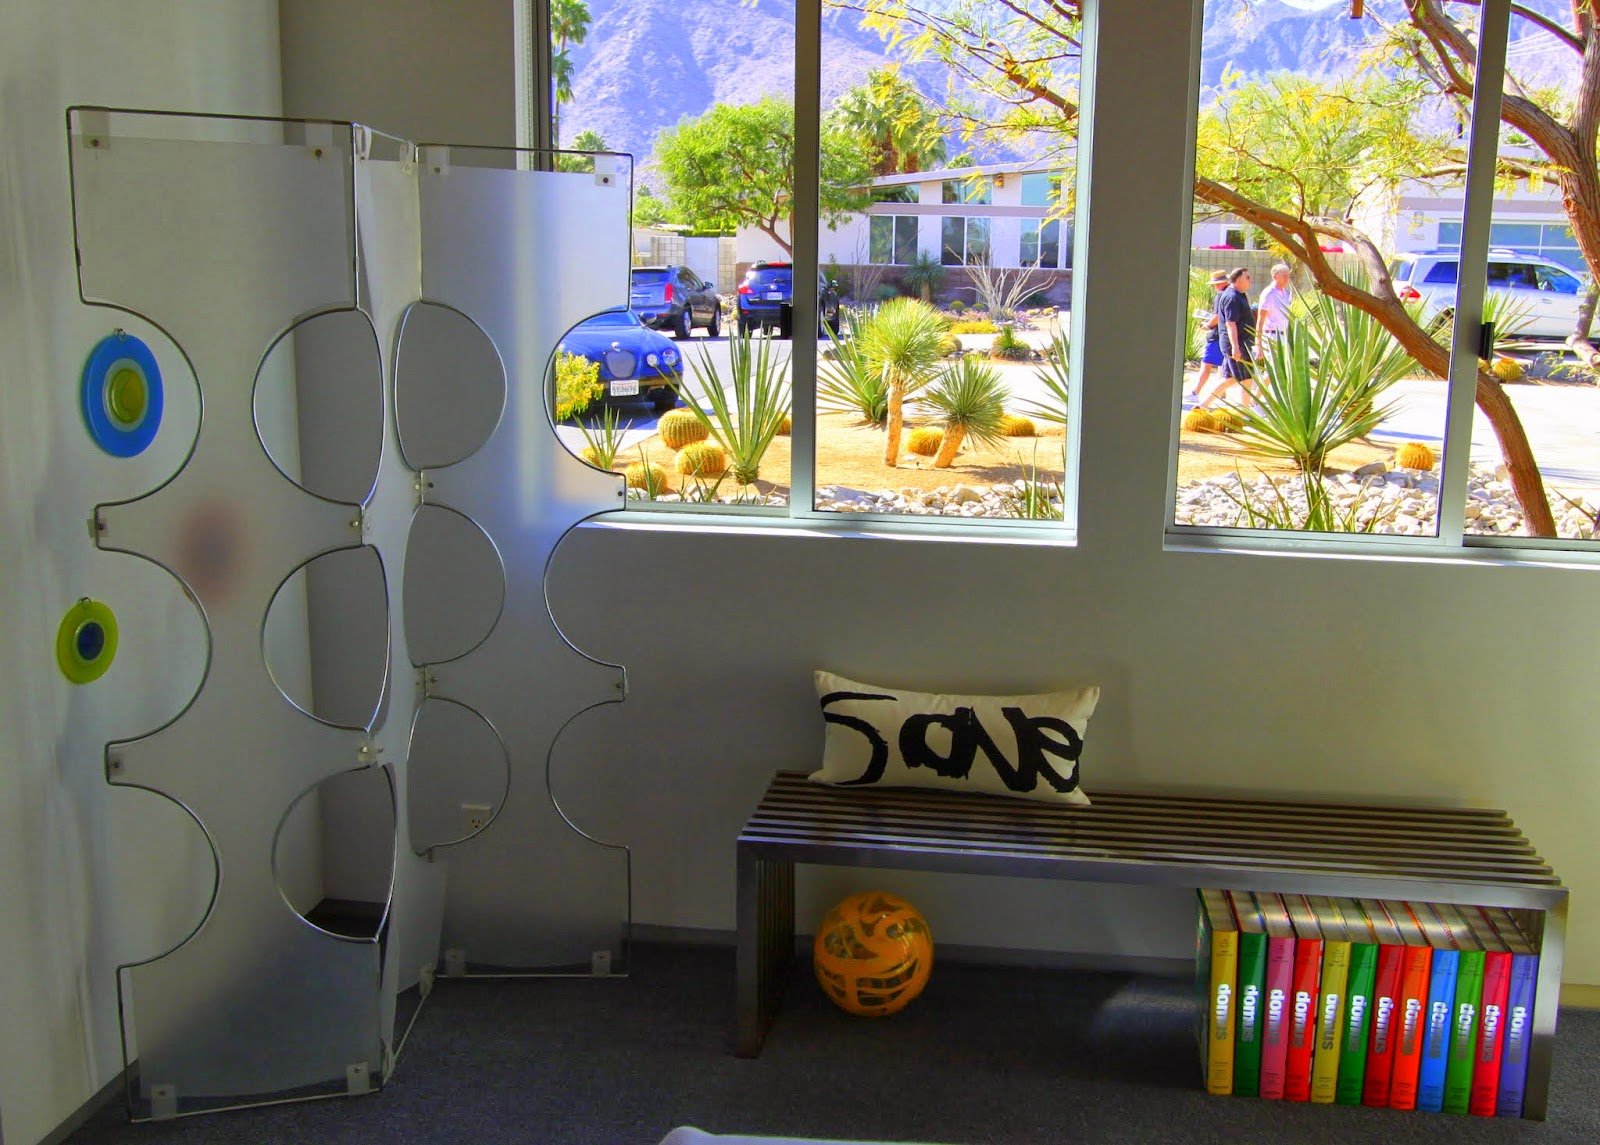 Palm Springs Modernism Week 2014, PSMW, Royal Palm Court, Mid-Century Modern Architecture